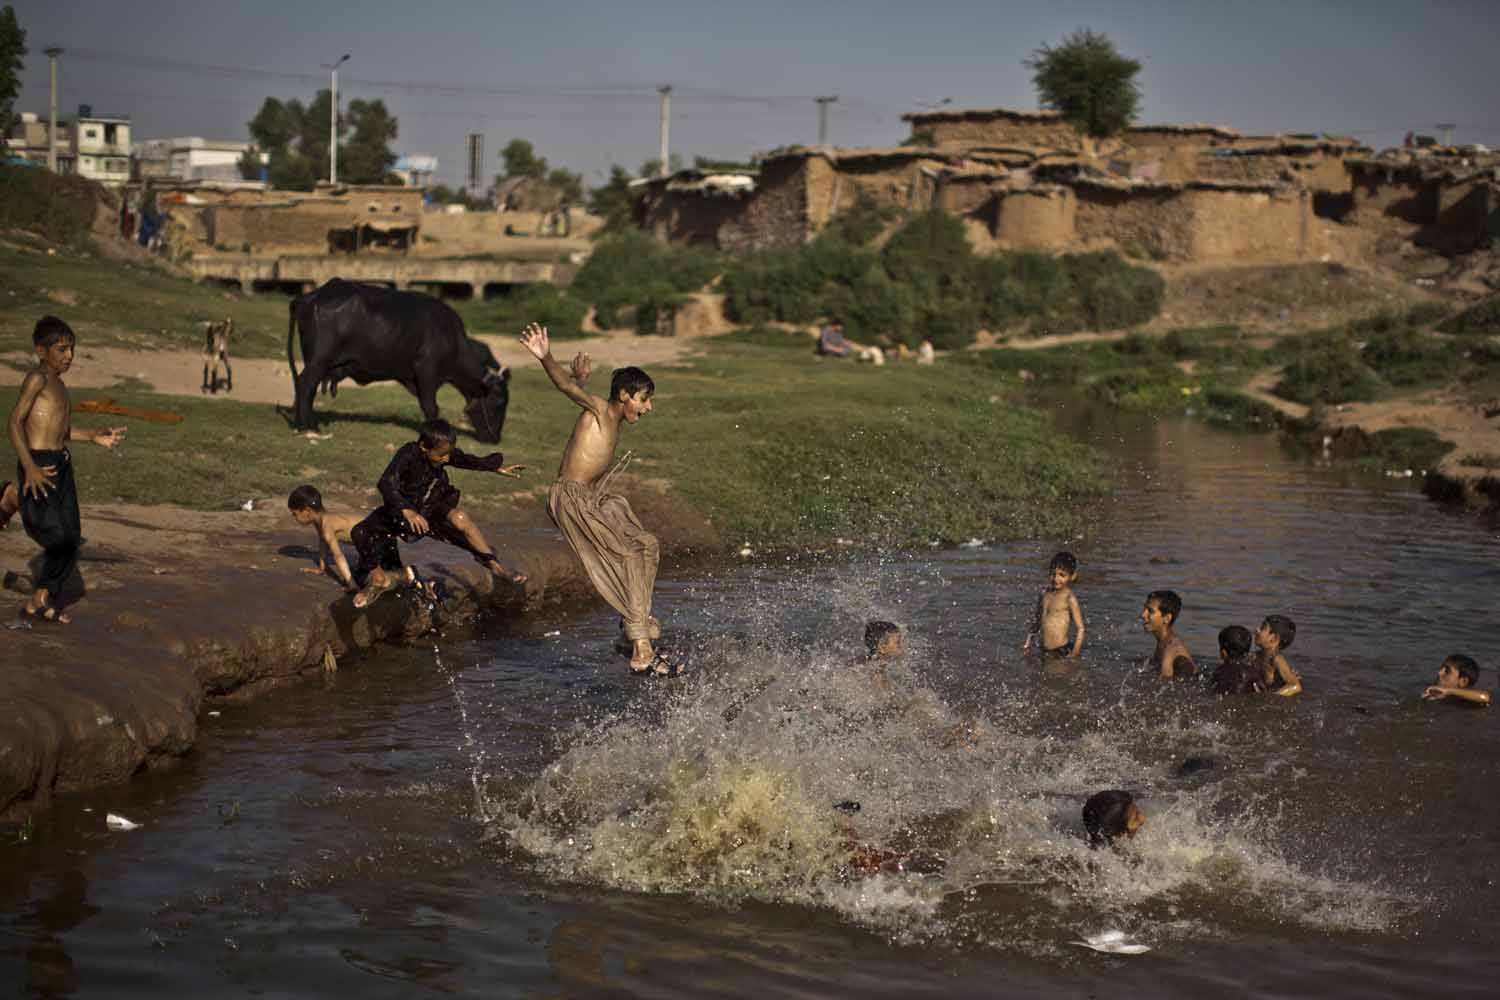 May 28, 2014. An Afghan refugee boy, center, jumps into the water, while he and others swim in a polluted stream to cool off as the temperature rises, on the outskirts of Islamabad, Pakistan.